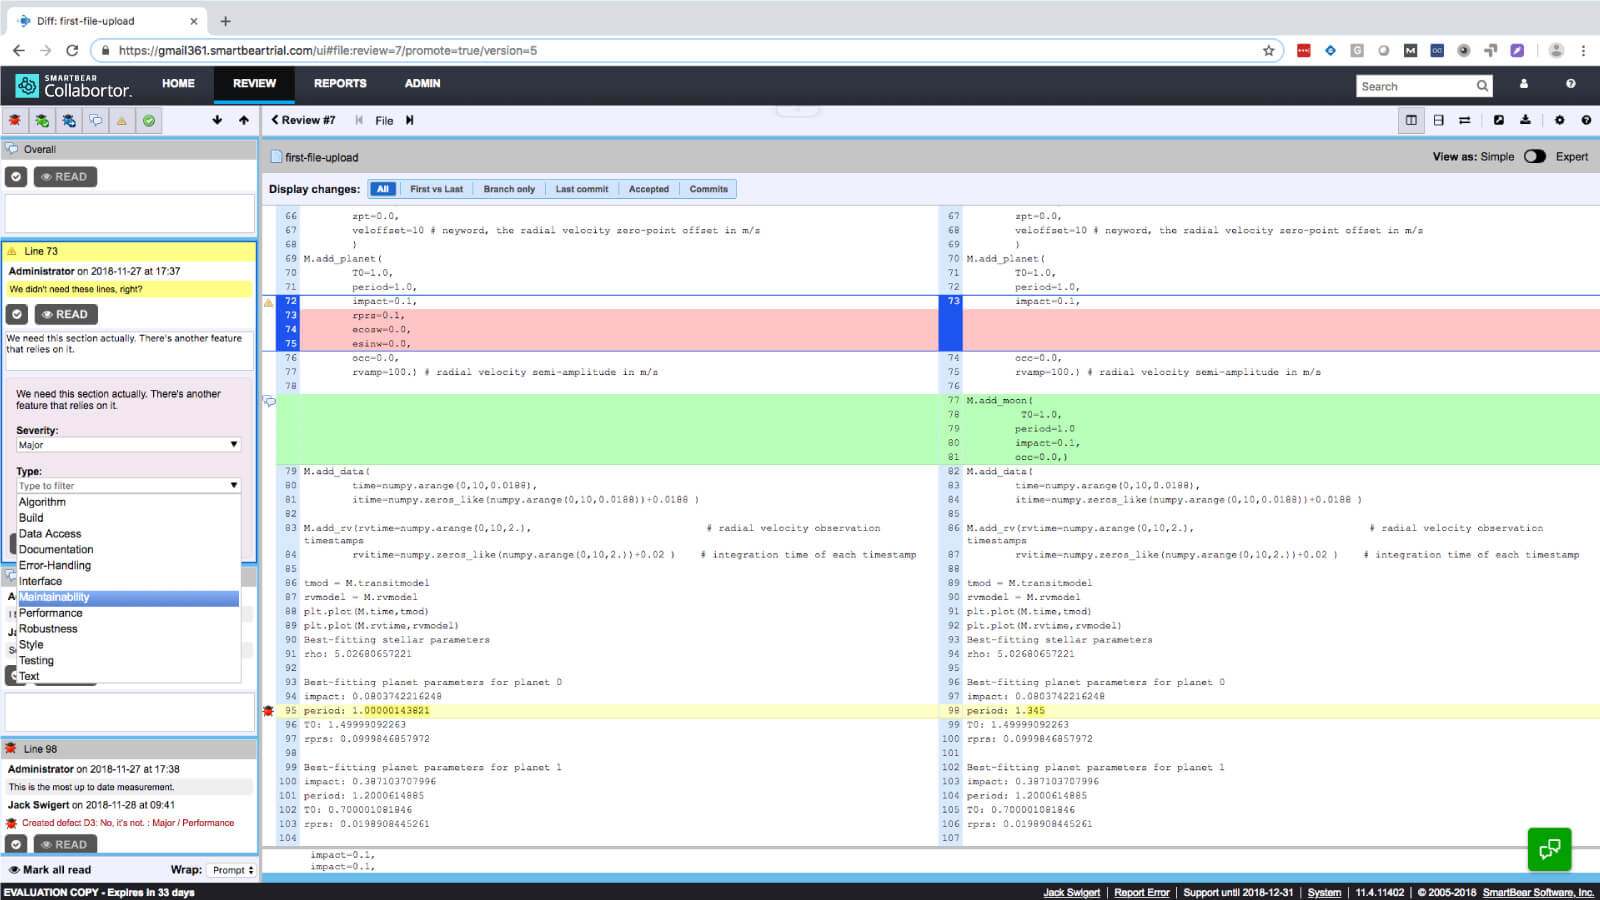 Feature List for the Premier Document & Code Review Tool | Collaborator